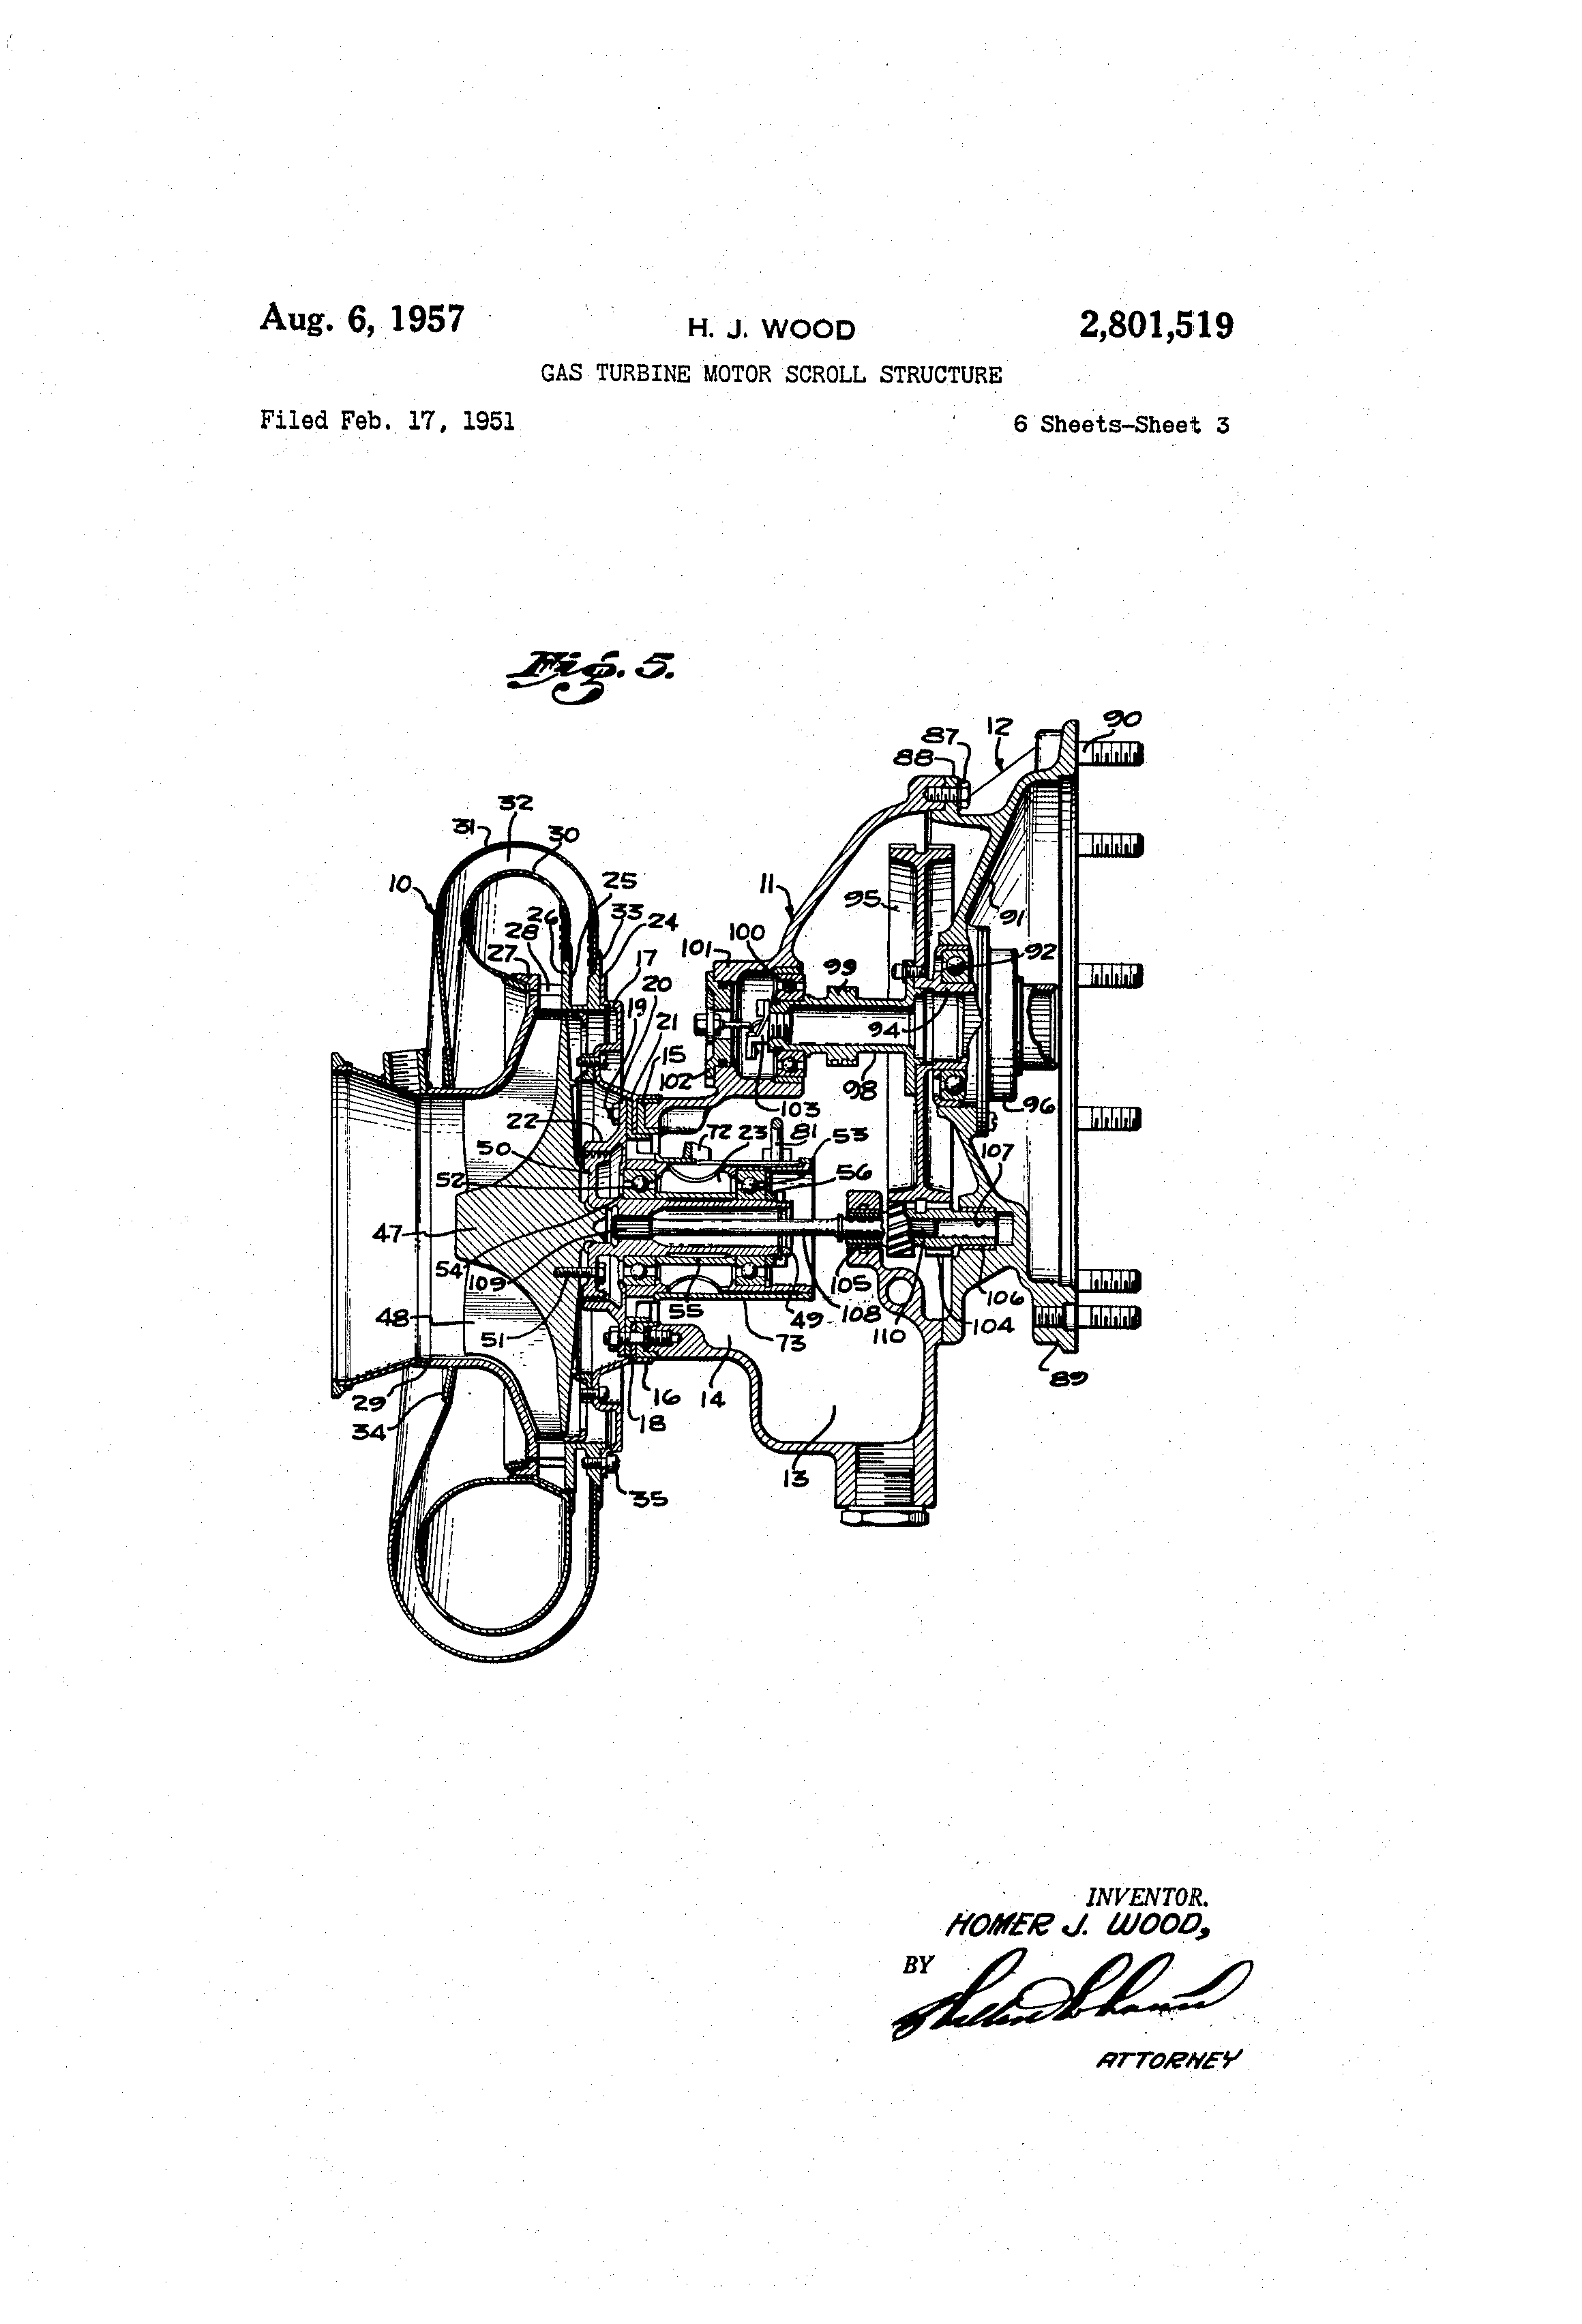 patent us2801519 - gas turbine motor scroll structure